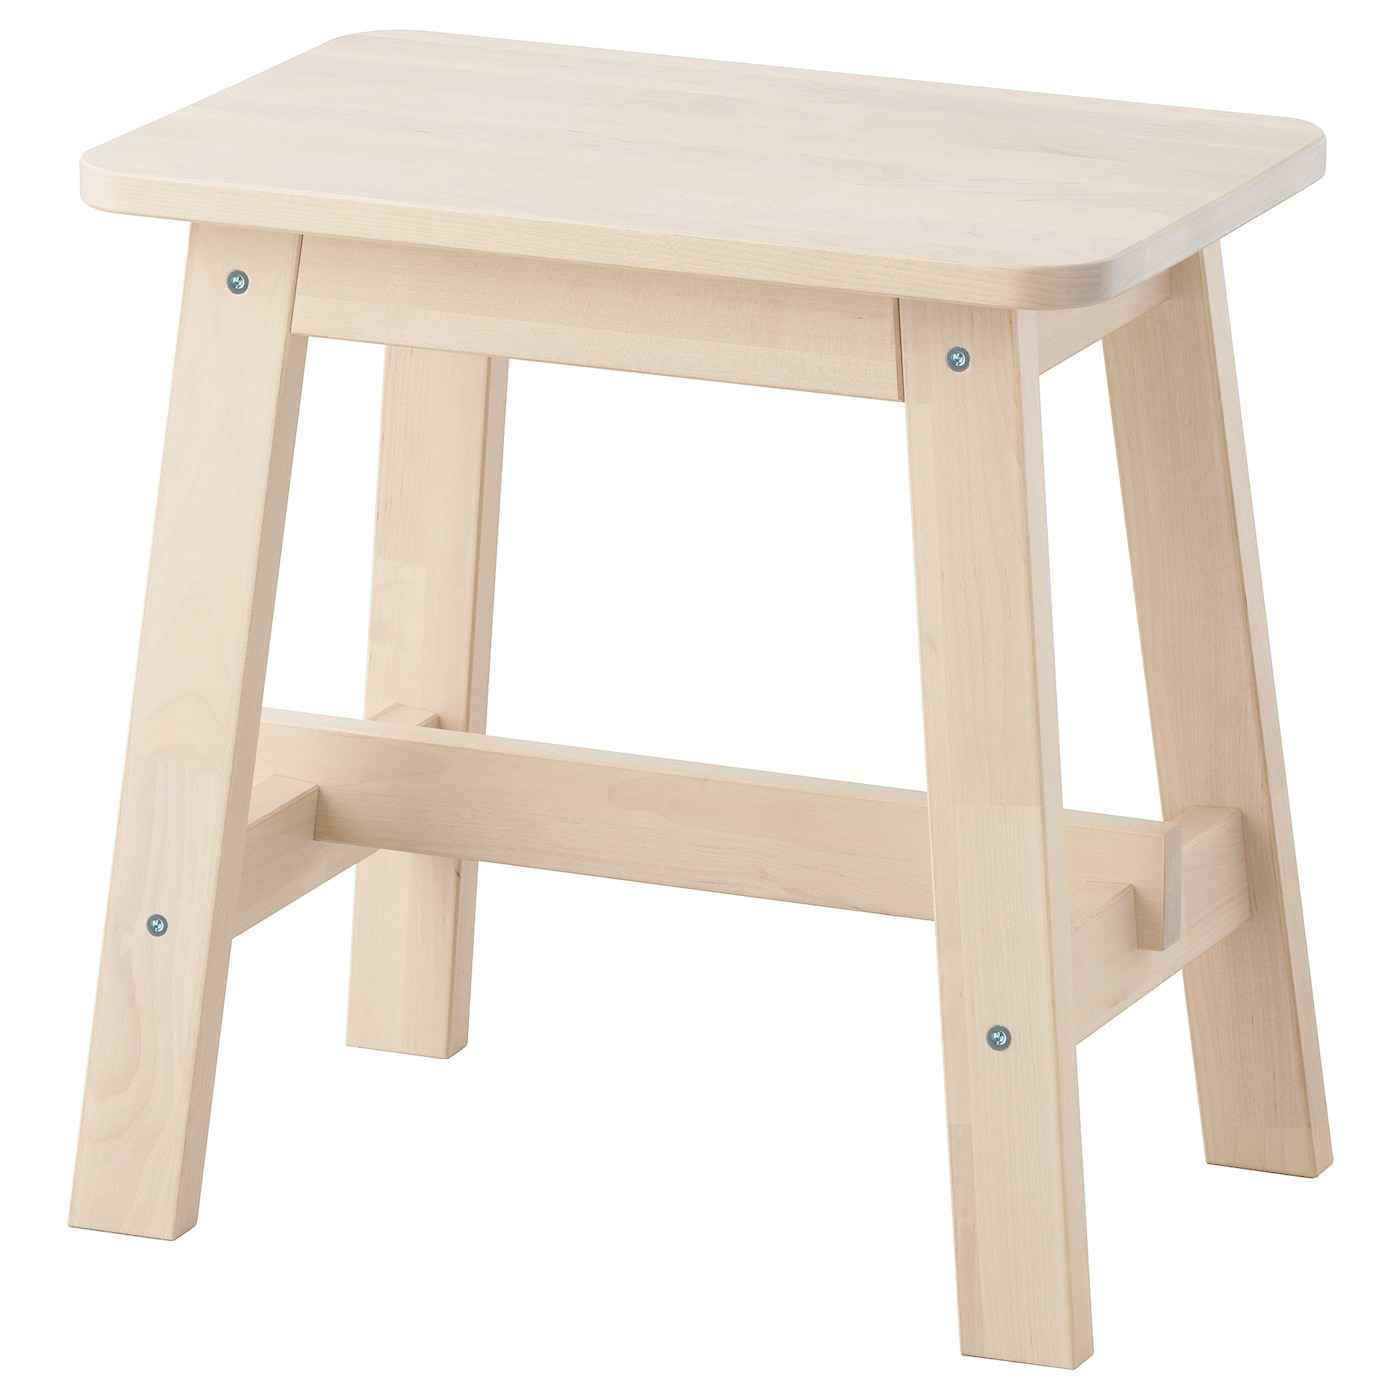 IKEA NORRÅKER stool Durable and hard-wearing; meets the requirements on furniture for public use.